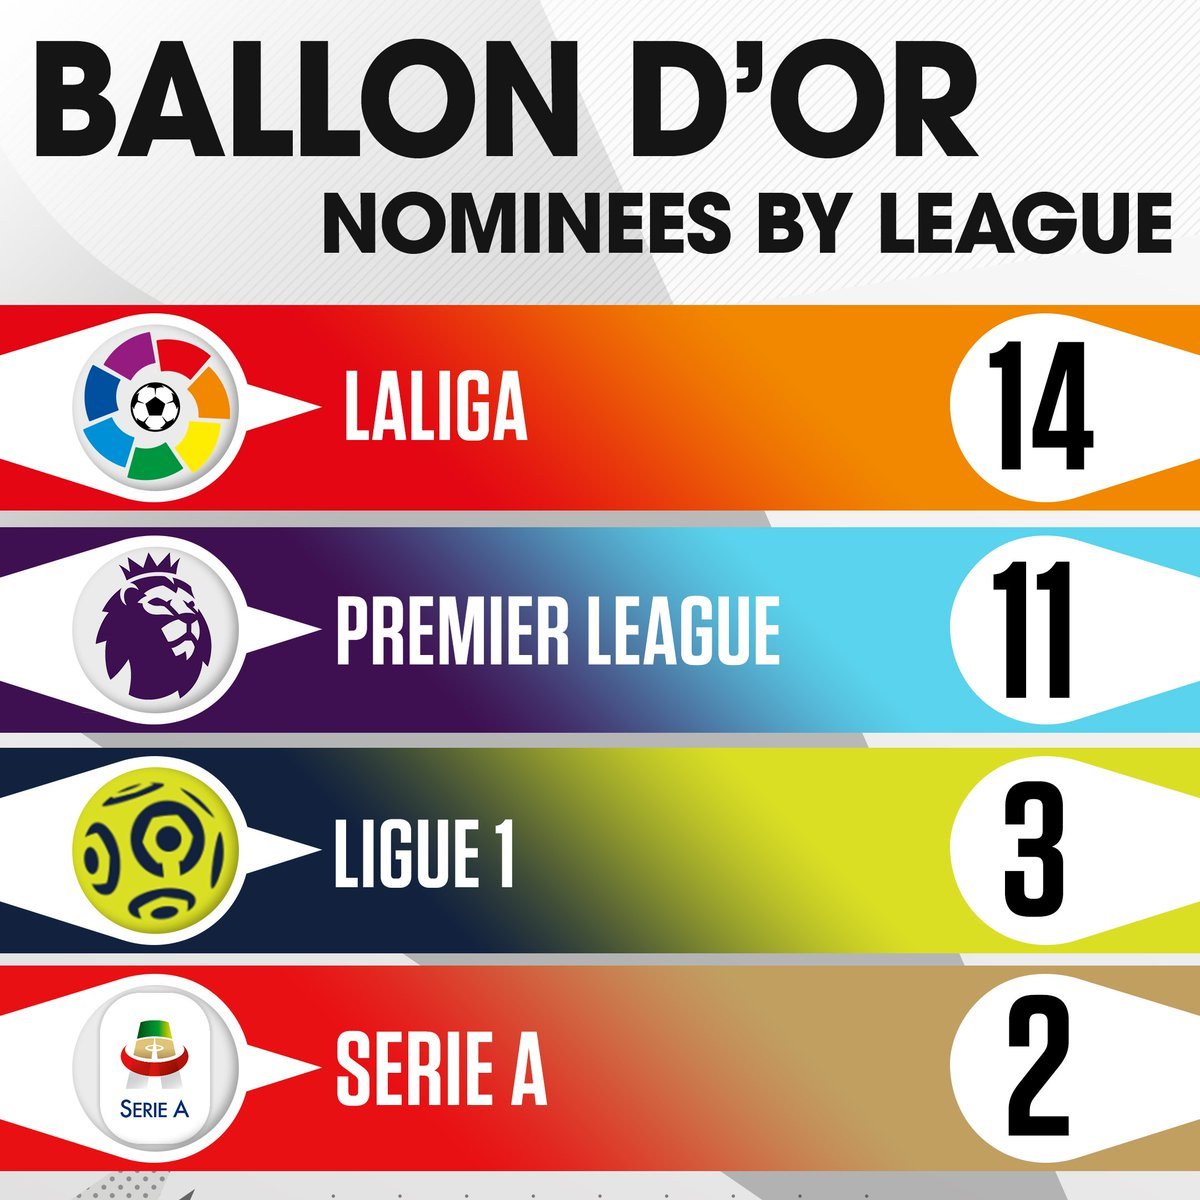 LaLiga and Premier League lead the way in #ballondor nominees 💪